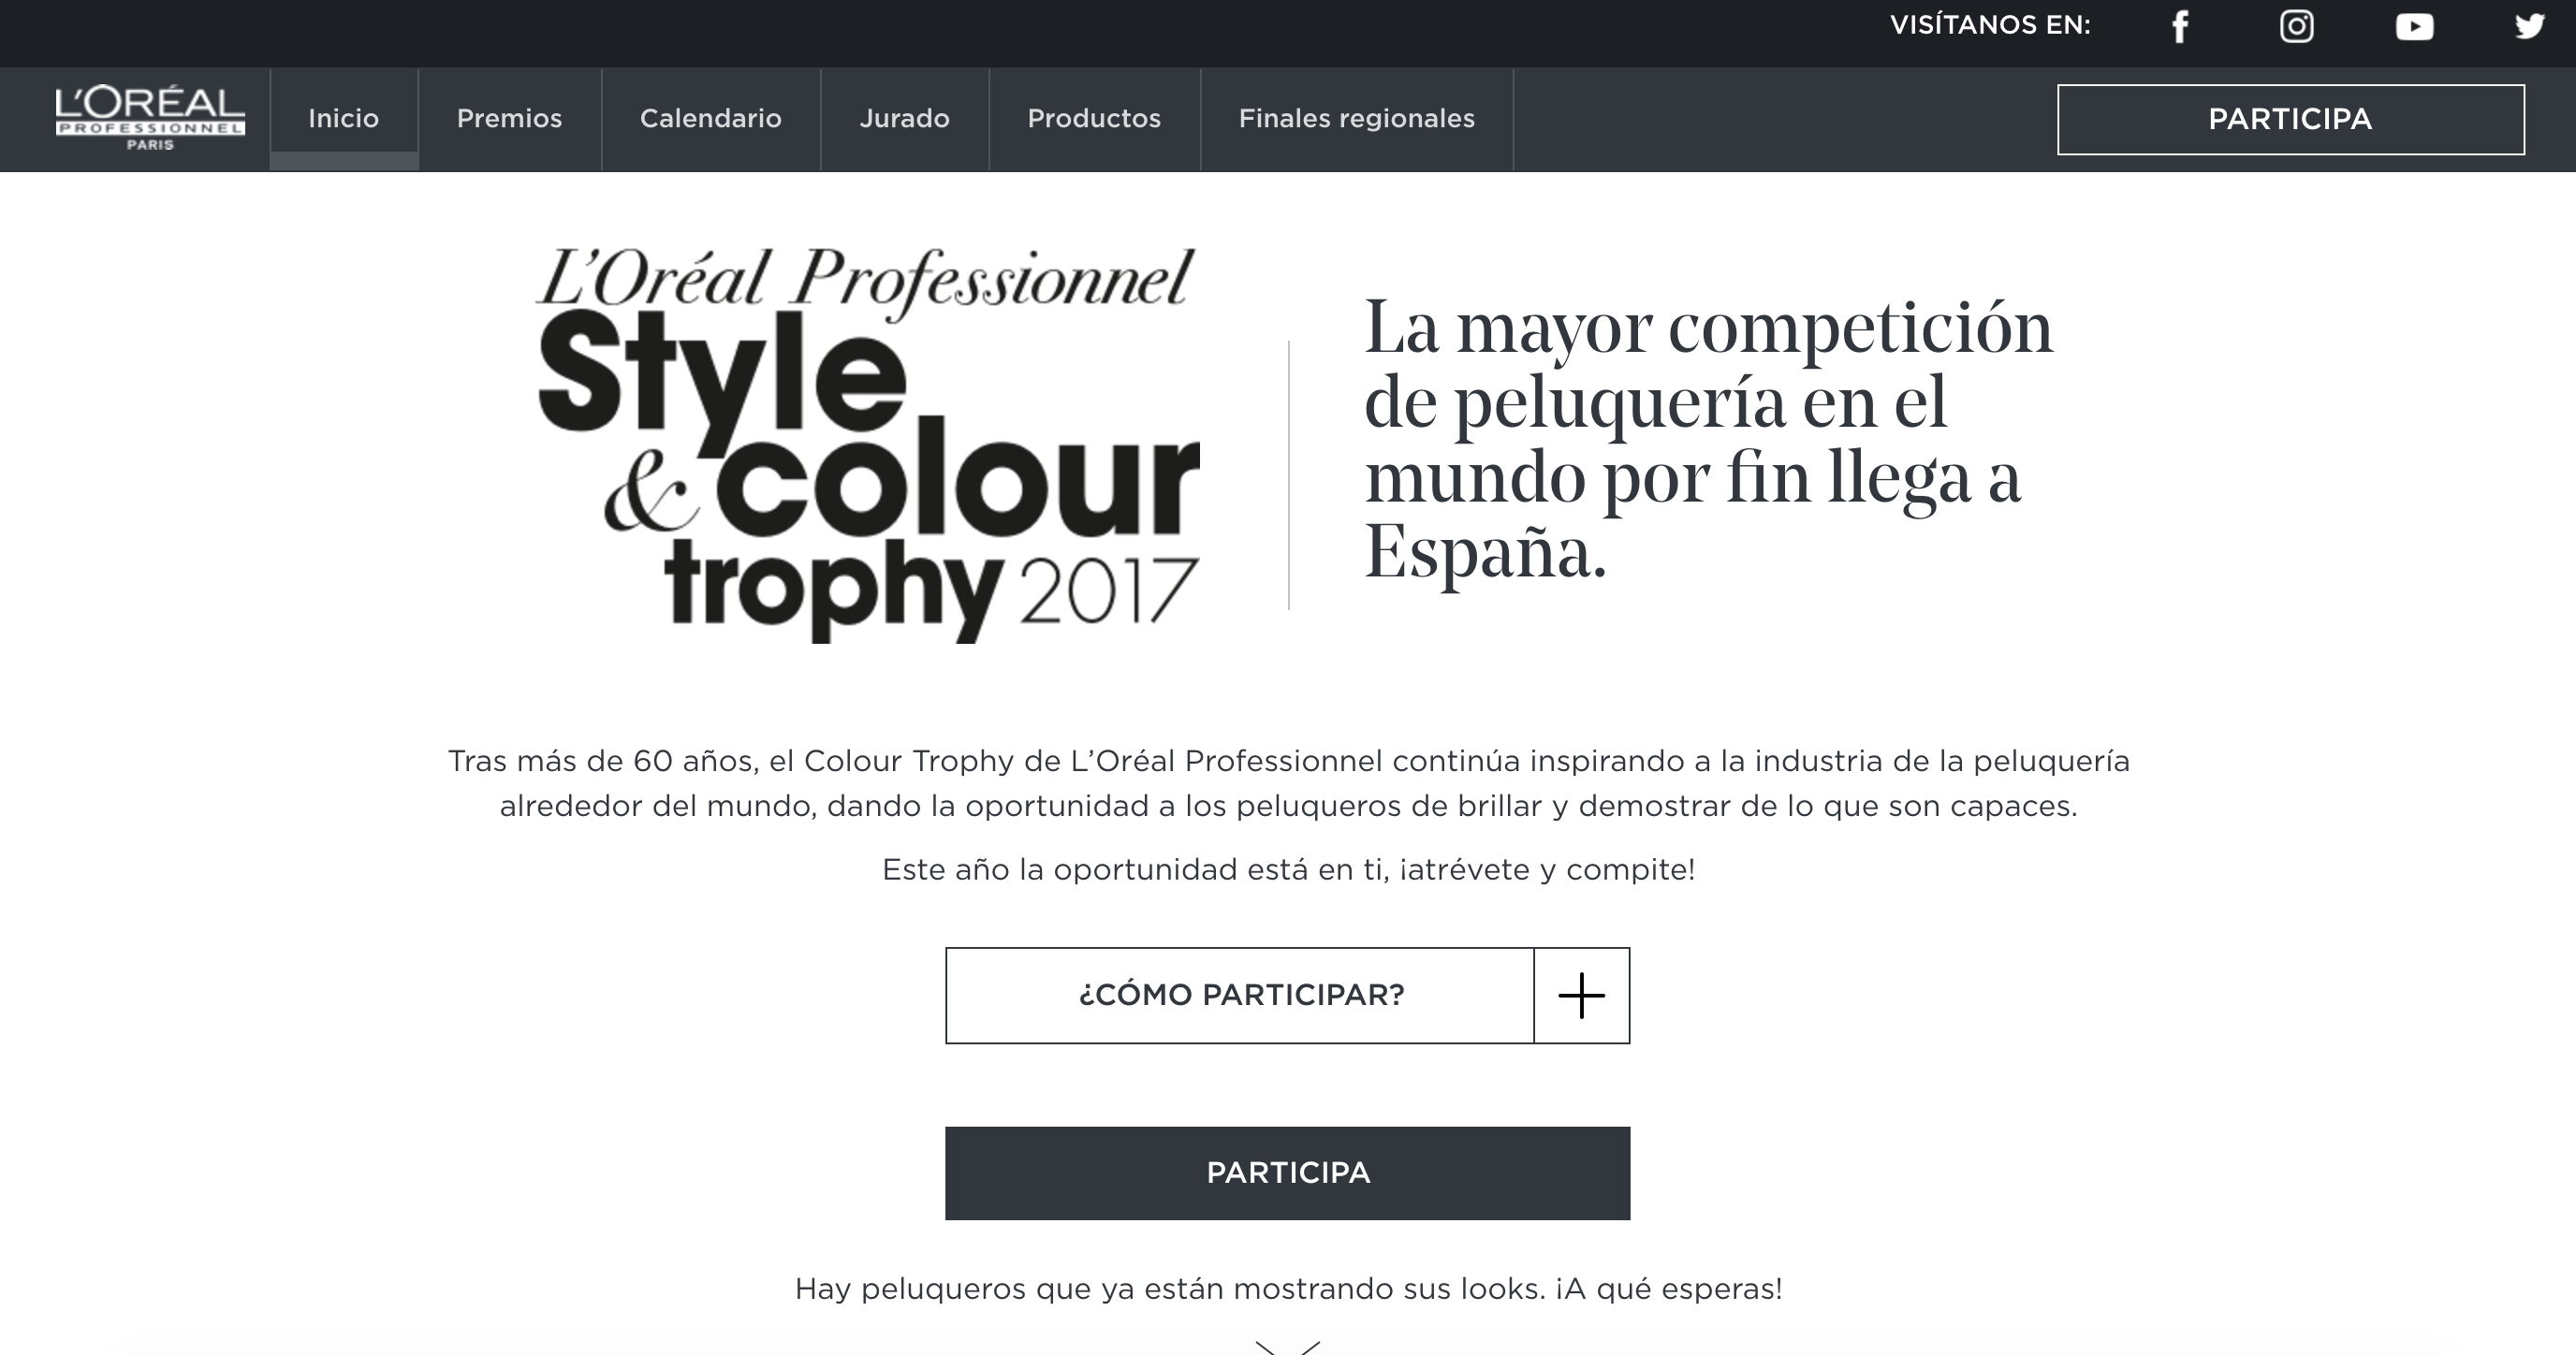 """L'Oreal Professionnel Colour Trophy website"". A project by rocio.g 